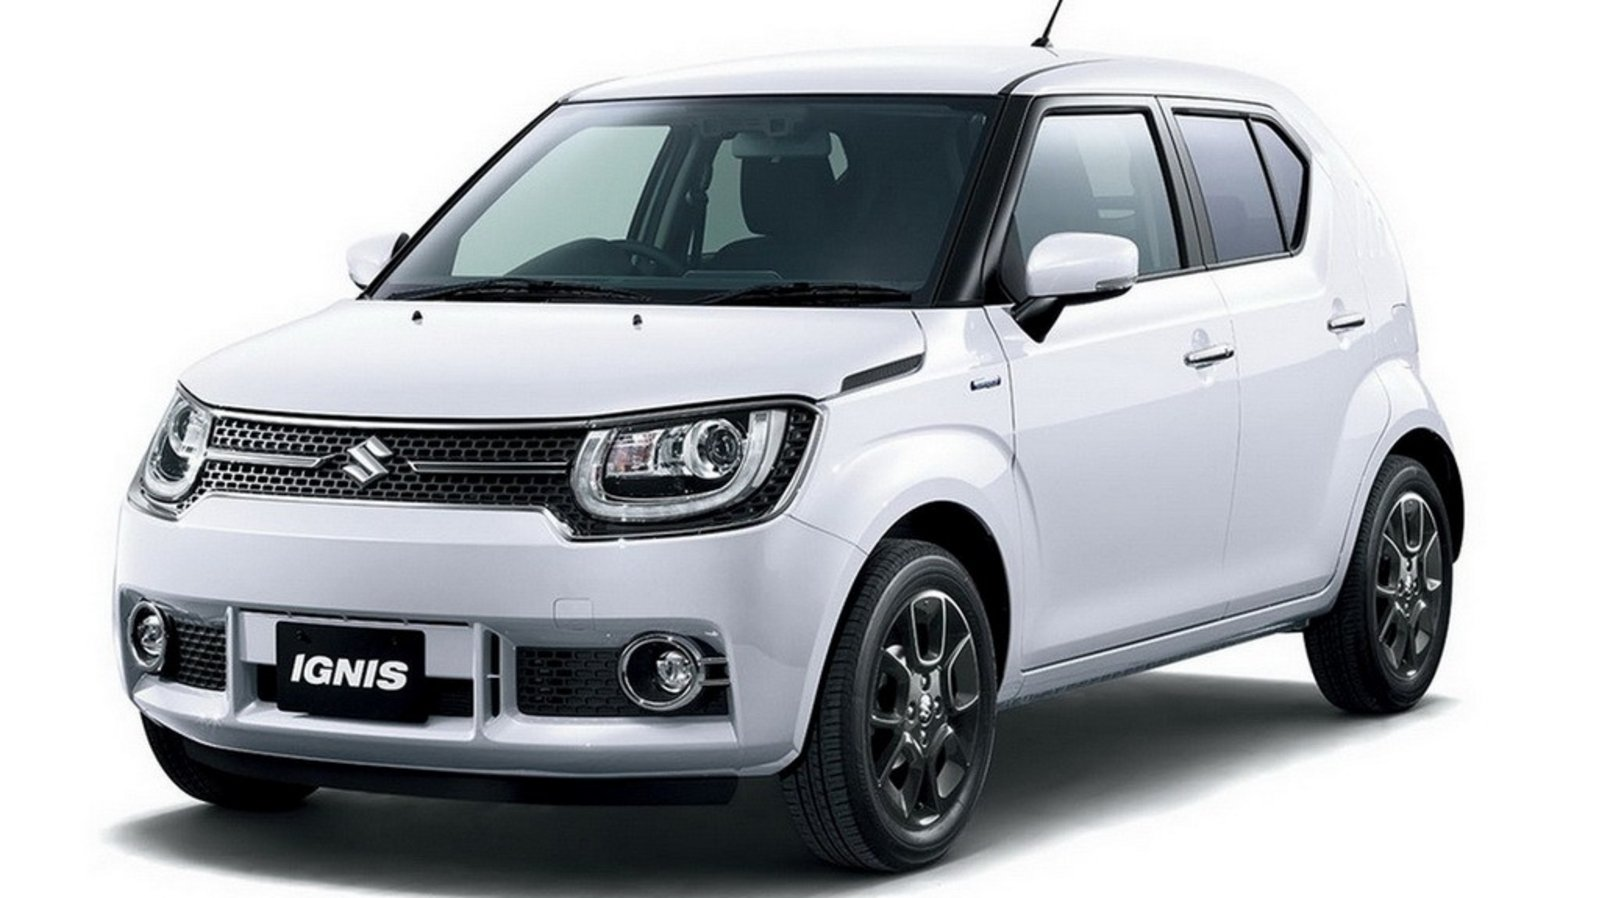 2016 suzuki ignis review top speed. Black Bedroom Furniture Sets. Home Design Ideas